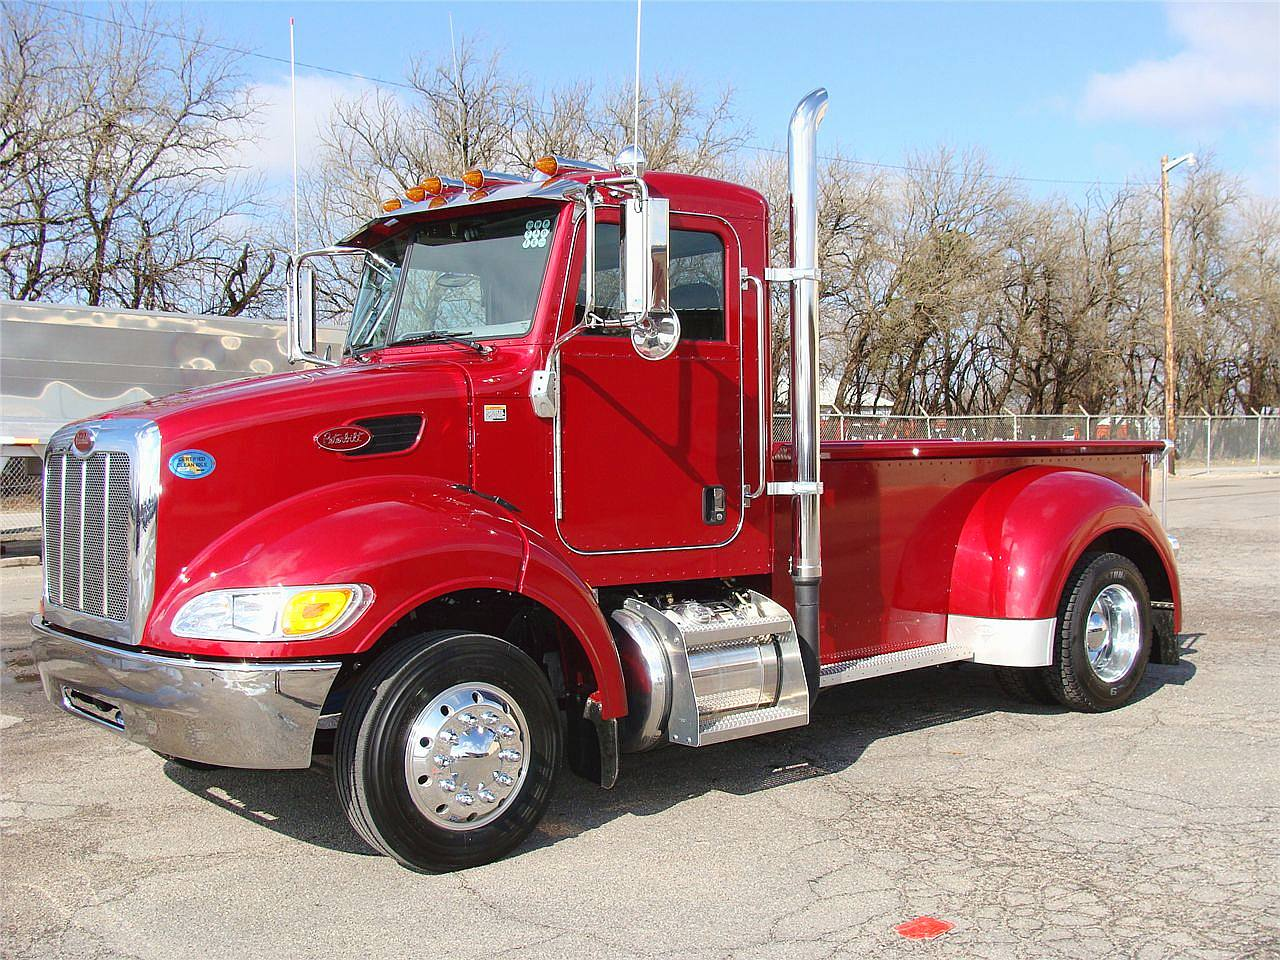 Mini Peterbilt Trucks For Sale.html | Autos Post